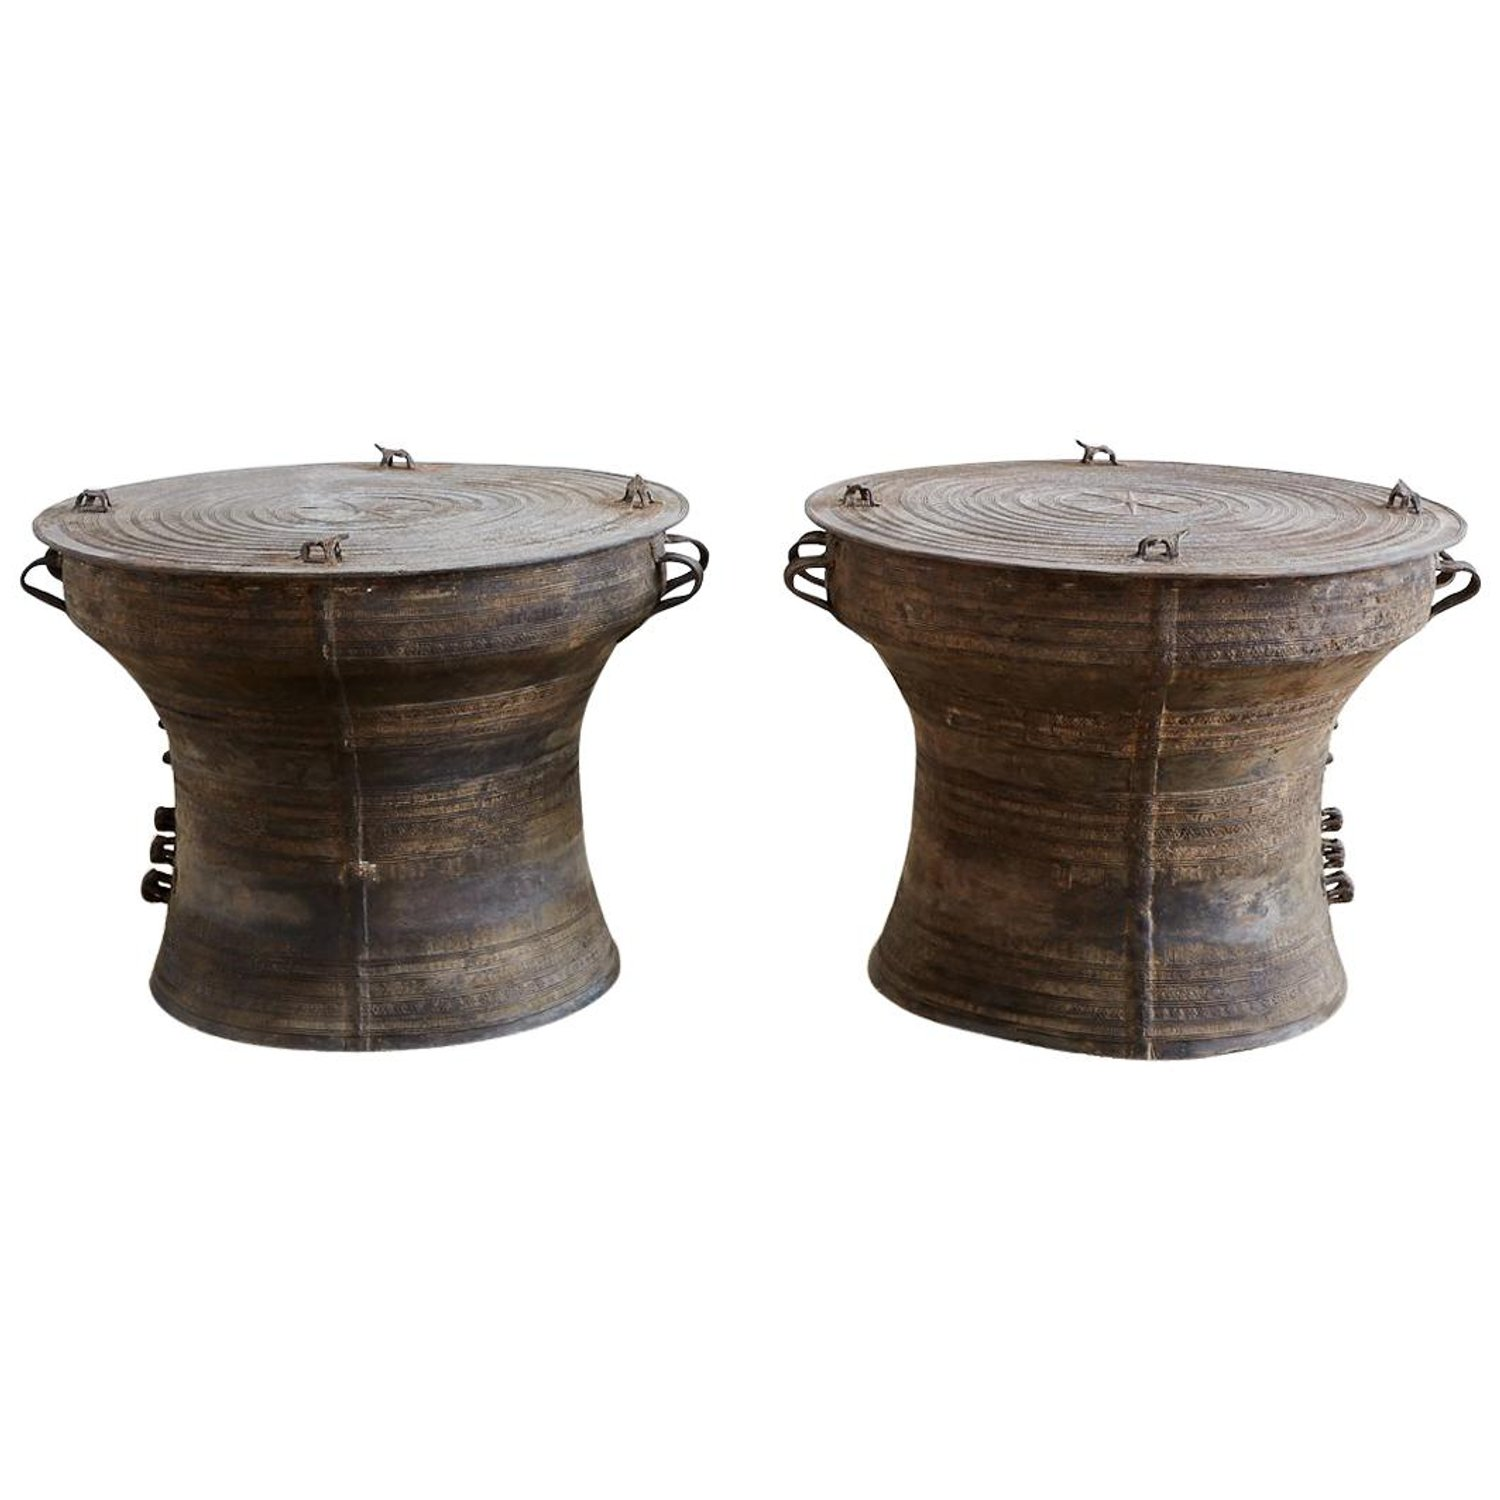 pair southeast asian bronze rain drum tables for master frog accent person bar height table mission style dining furniture sets designer placemats and napkins antique pine runner